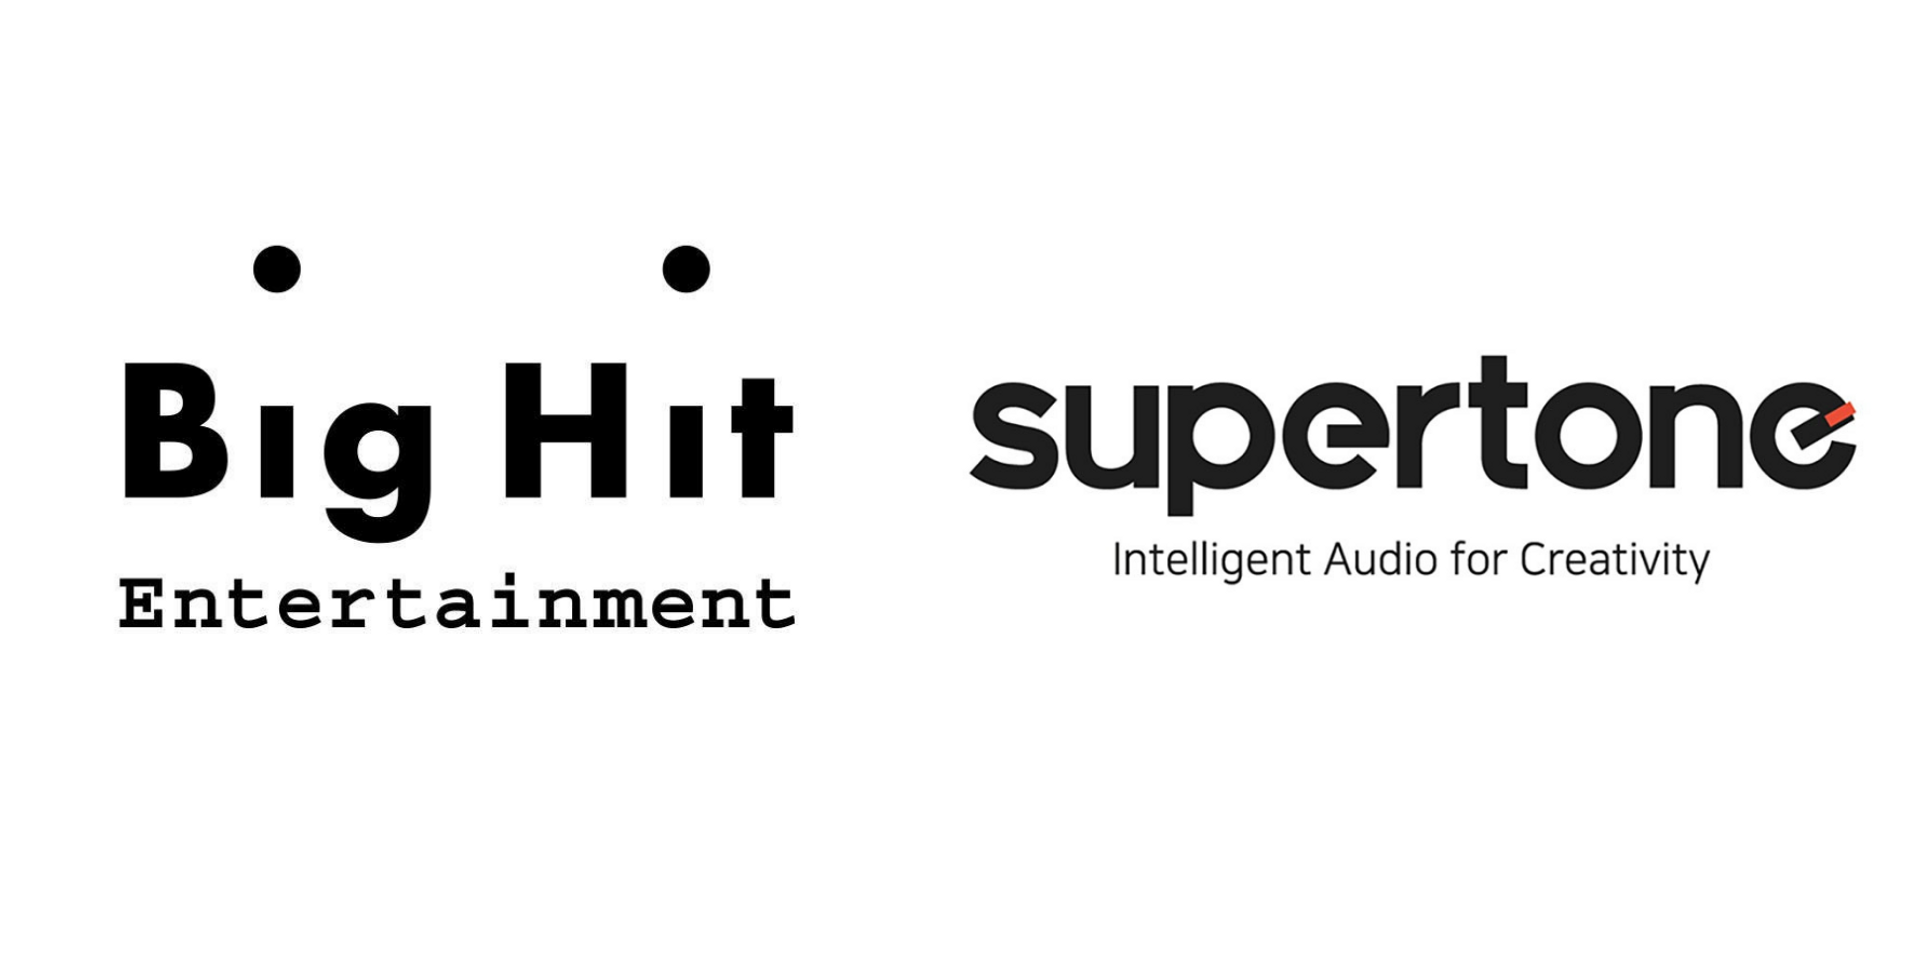 Big Hit Entertainment announces US$3.5 million investment in South Korean audio AI company Supertone